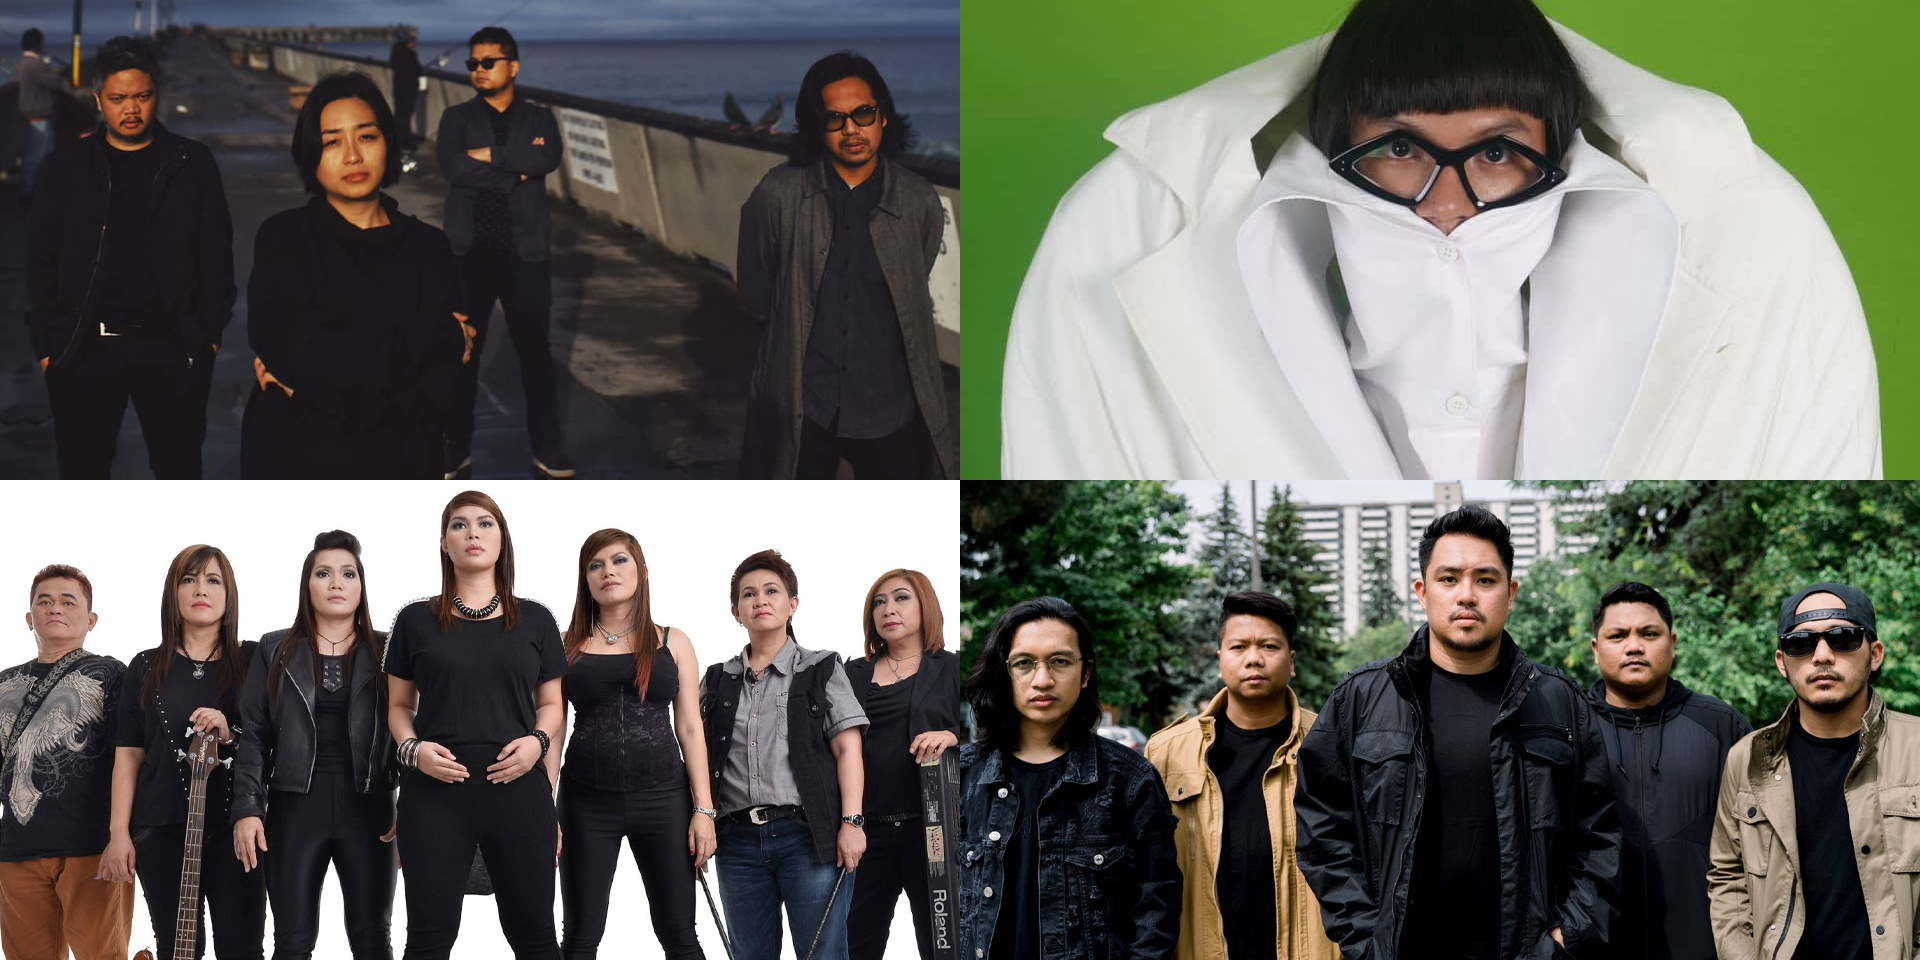 Aegis, UDD, December Avenue, Unique, and more to perform at Santelmo Halloween Music Party